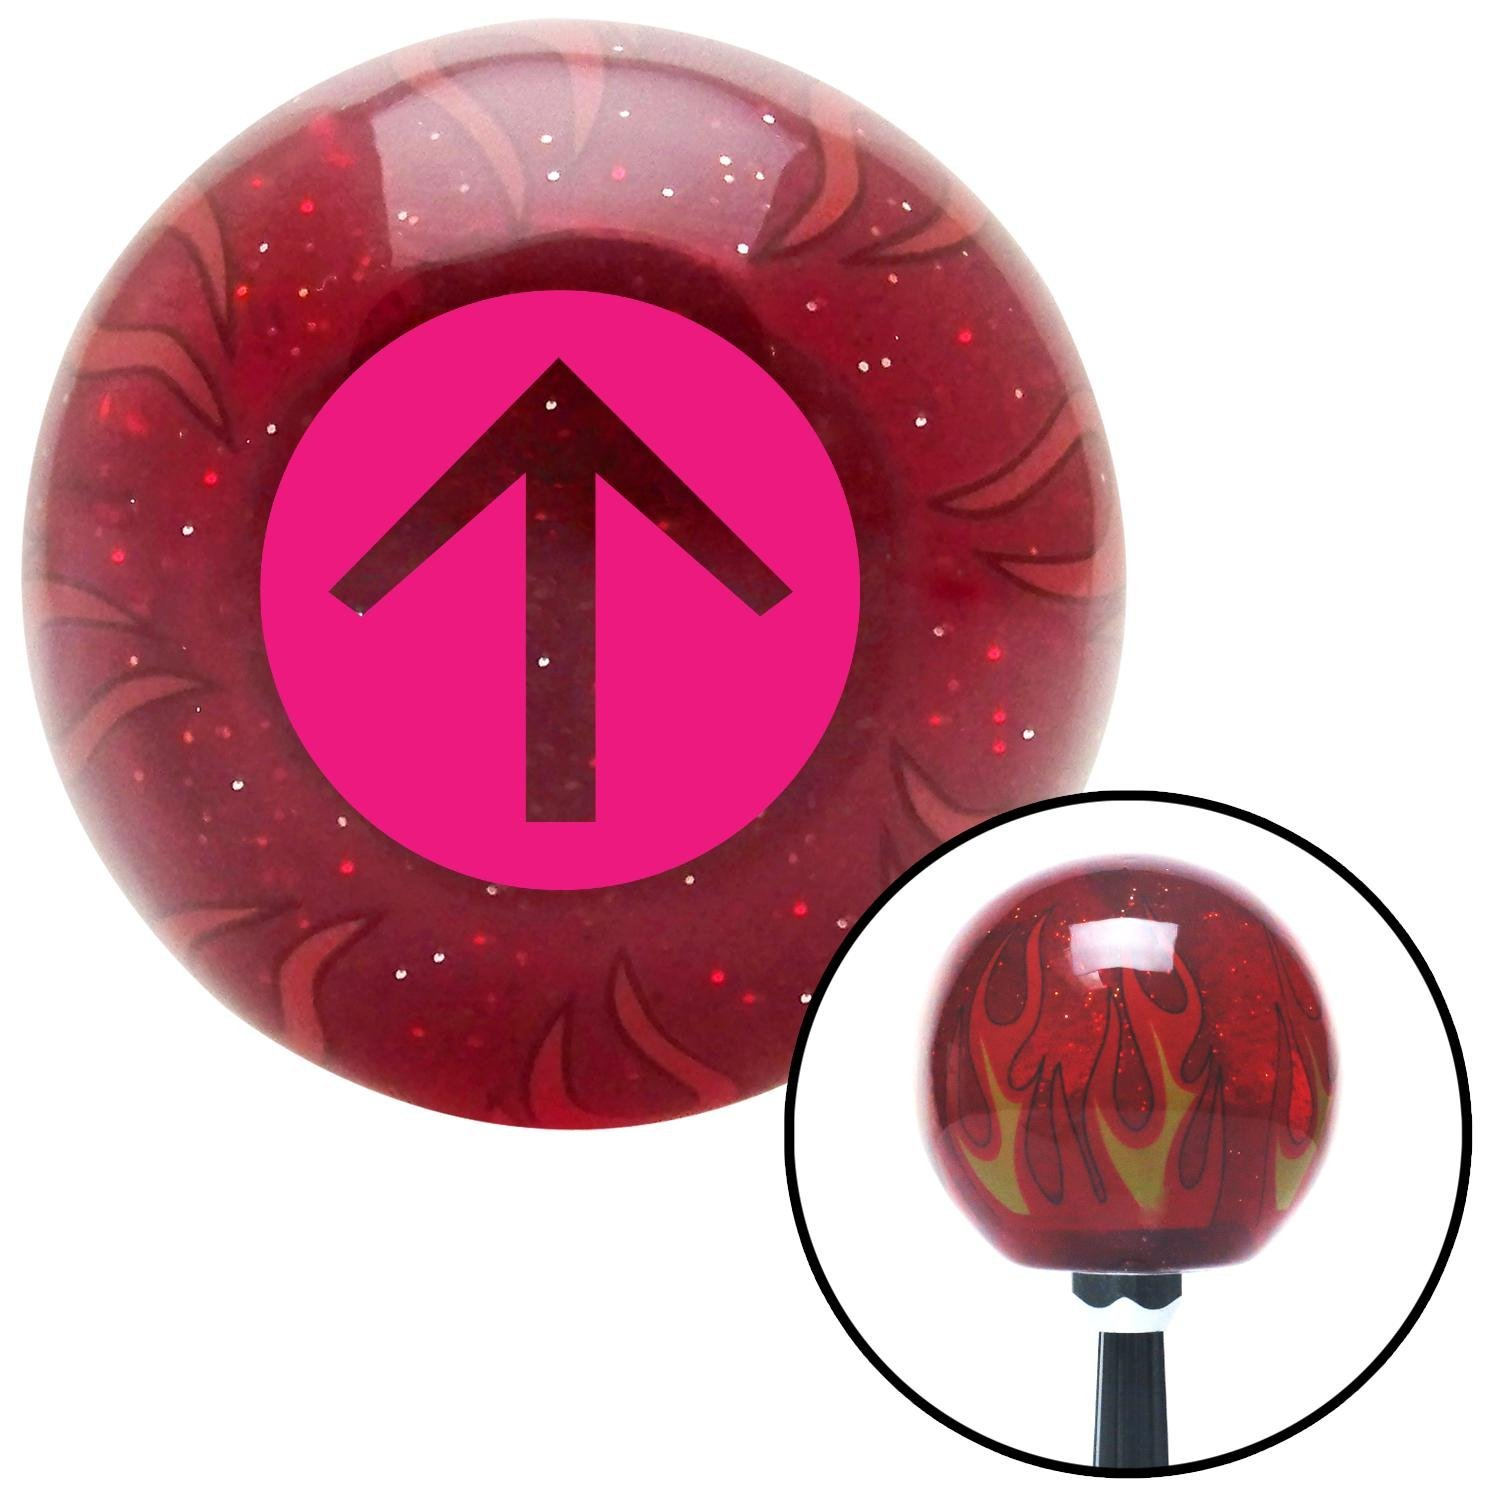 American Shifter 236137 Red Flame Metal Flake Shift Knob with M16 x 1.5 Insert Pink Circle Directional Arrow Up